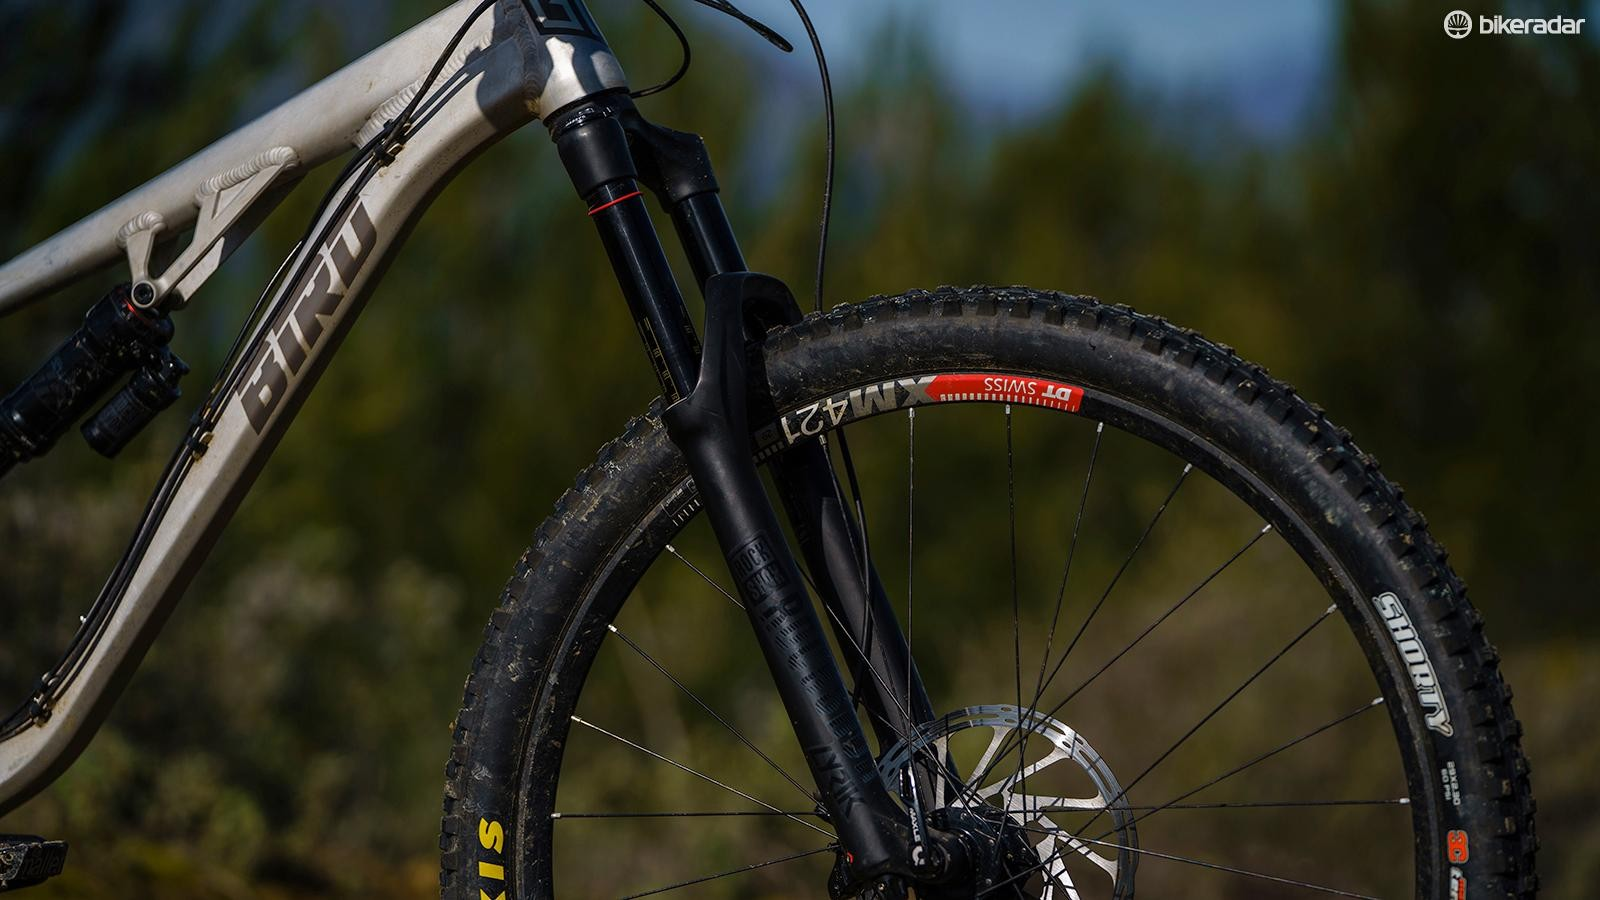 We're big fans of the RockShox Lyrik RCT3 fork. It's impressively sensitive though well-supported when it matters and tuning the end stroke is a doddle